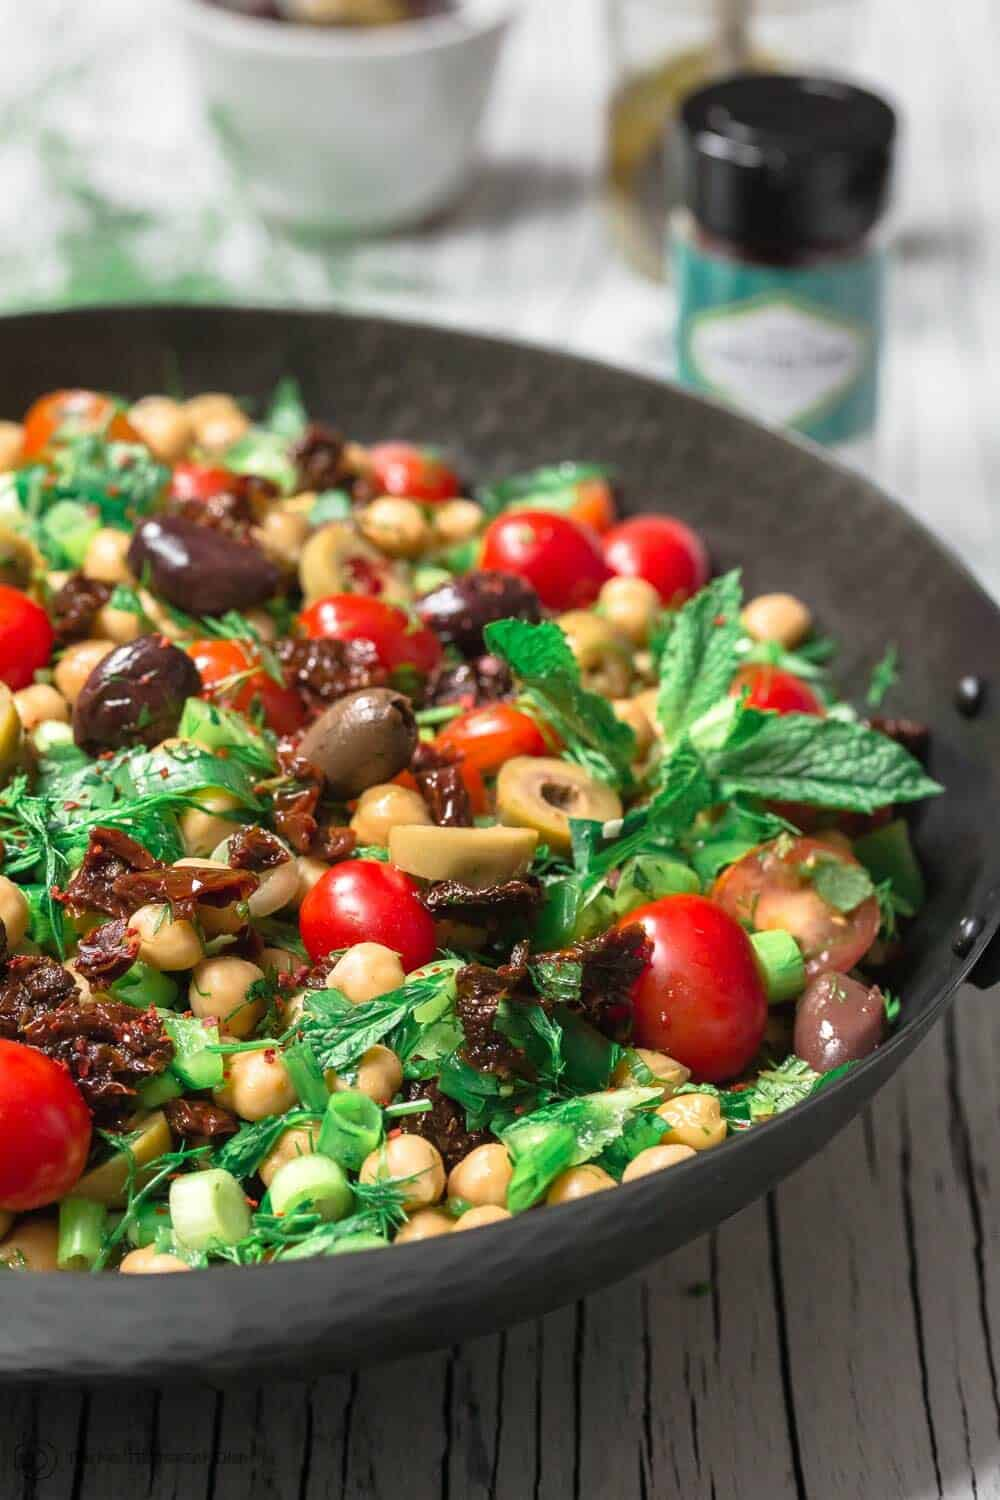 Balela Salad Recipe | The Mediterranean Dish. Bright, flavor-packed Mediterranean chickpea salad with chopped veggies, lots of herbs, and favorites like olives and sun-dried tomatoes. A zesty dressing brings it all together! A simple recipe from TheMediterraneanDish.com #balela #chickpeasalad #mediterraneanfood #mediterraneanrecipe